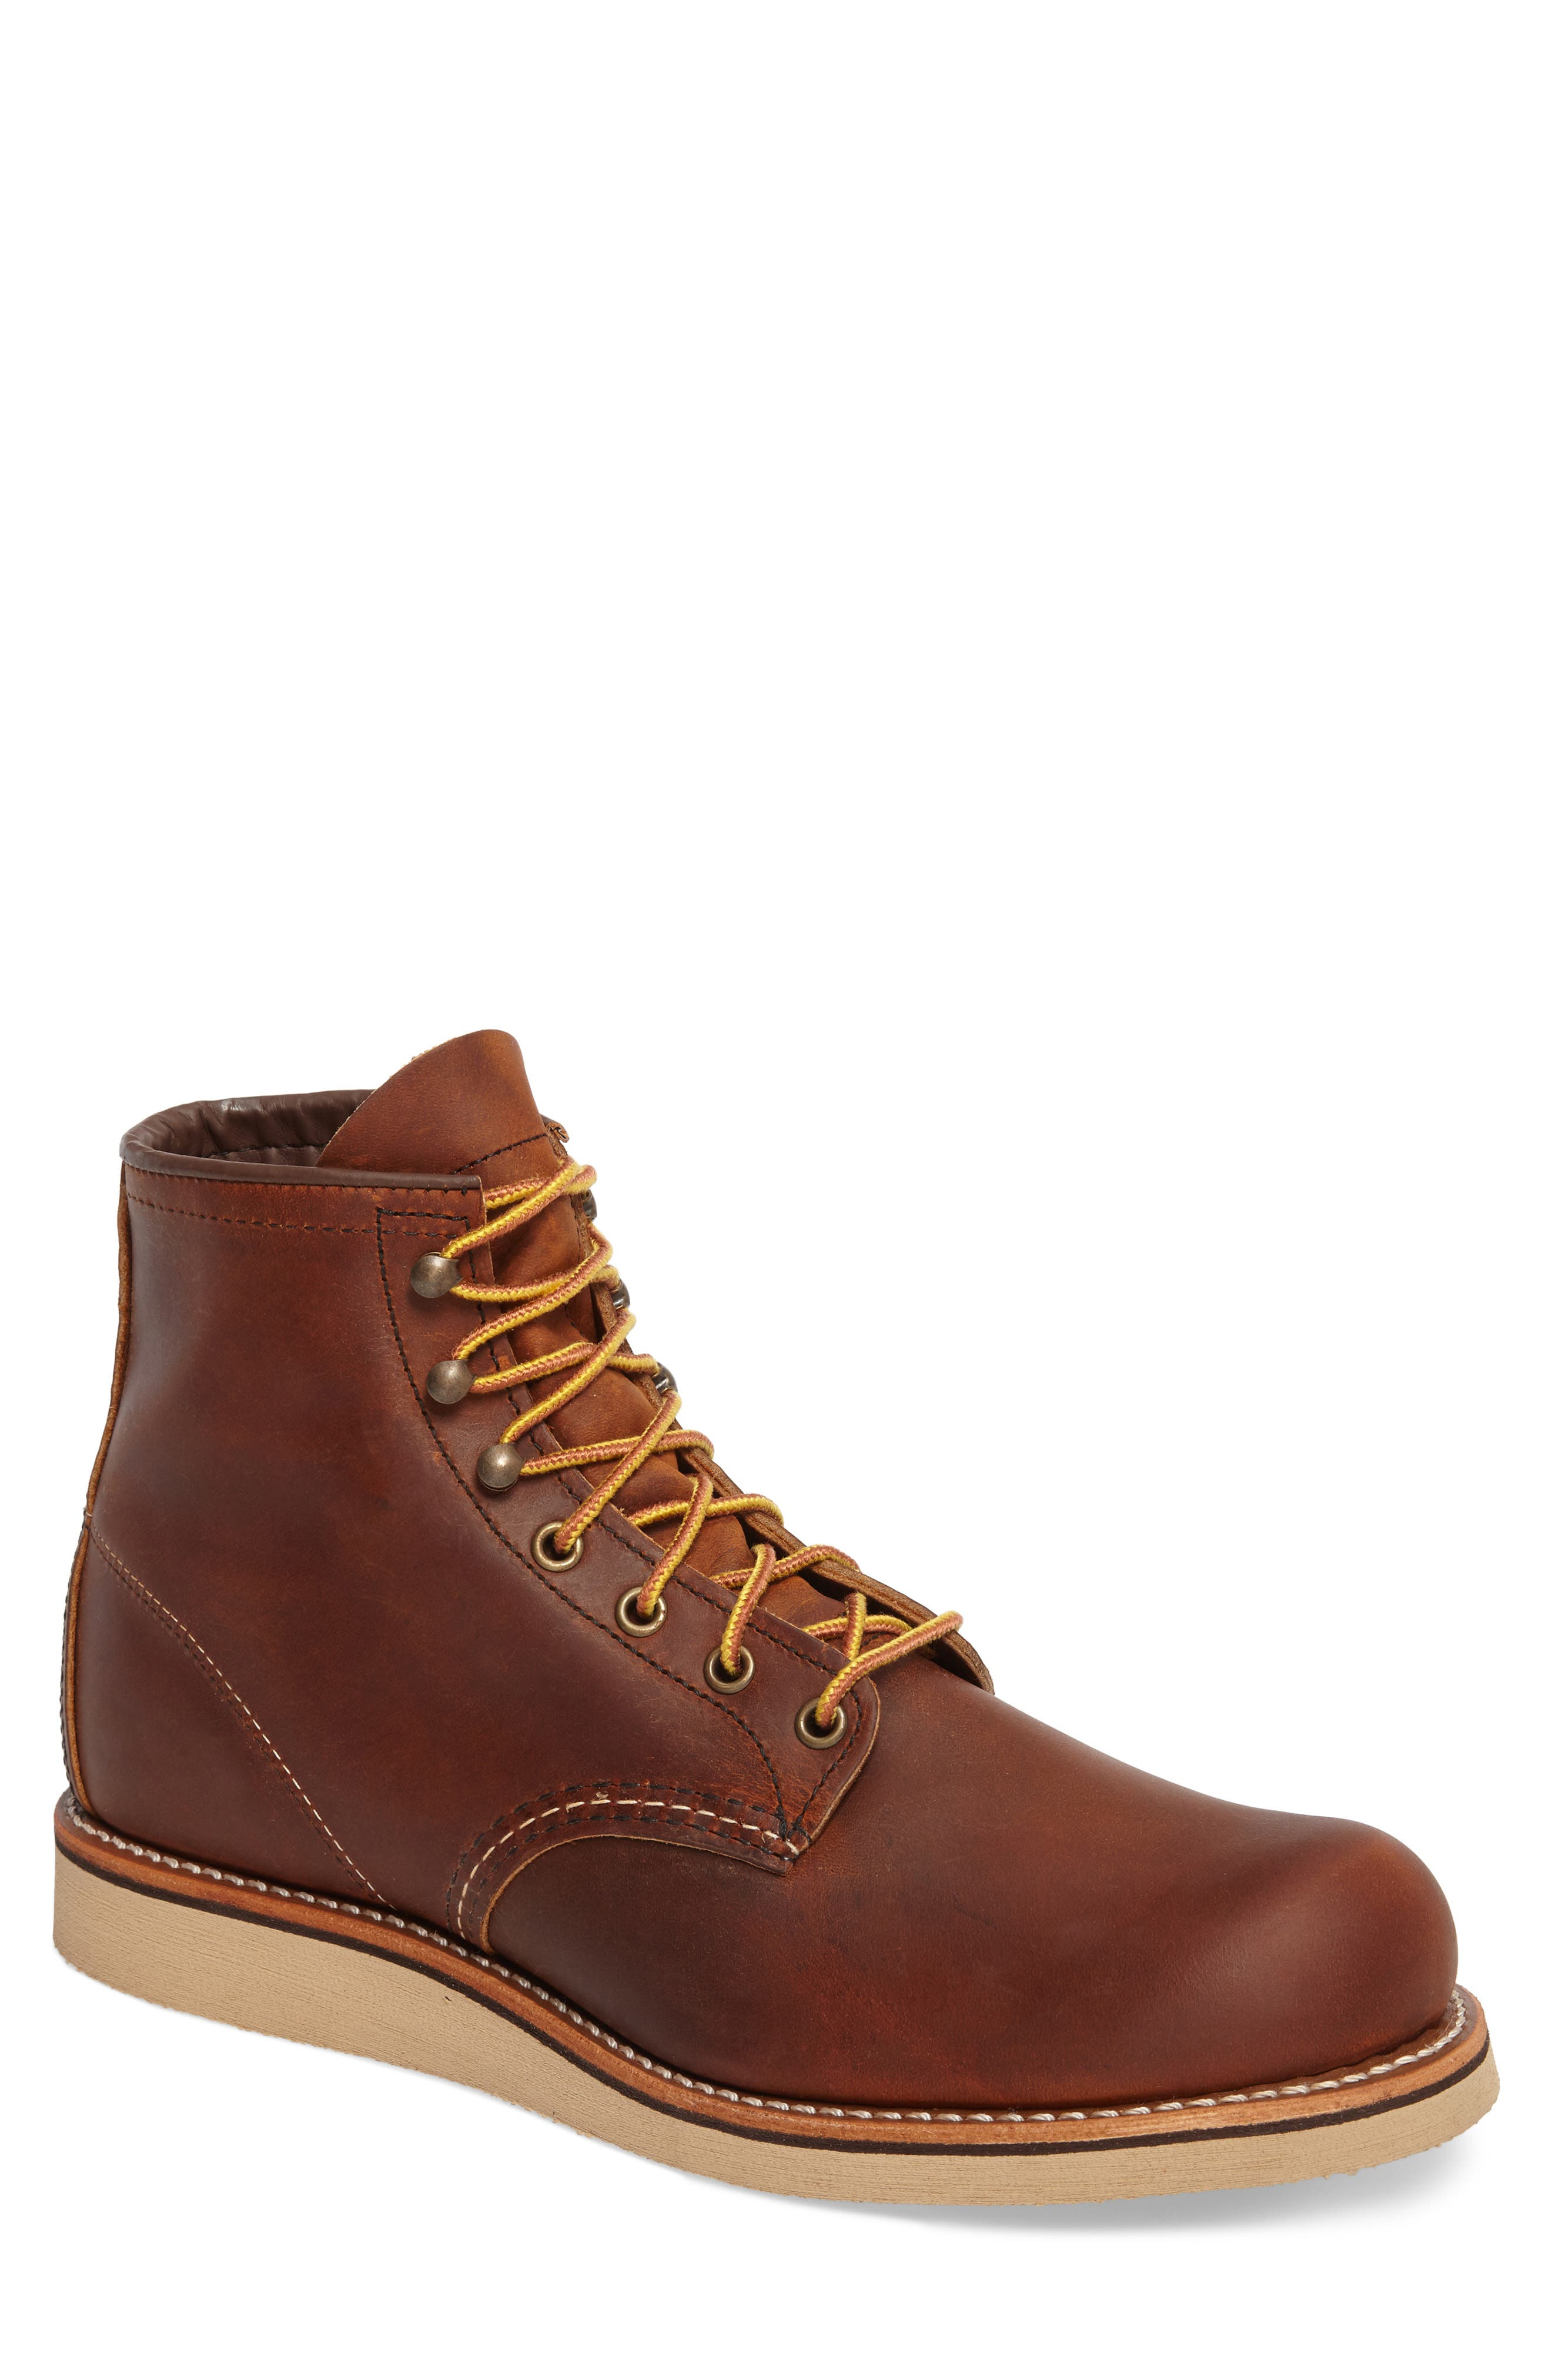 Red Wing Rover Plain Toe Boot, Brown